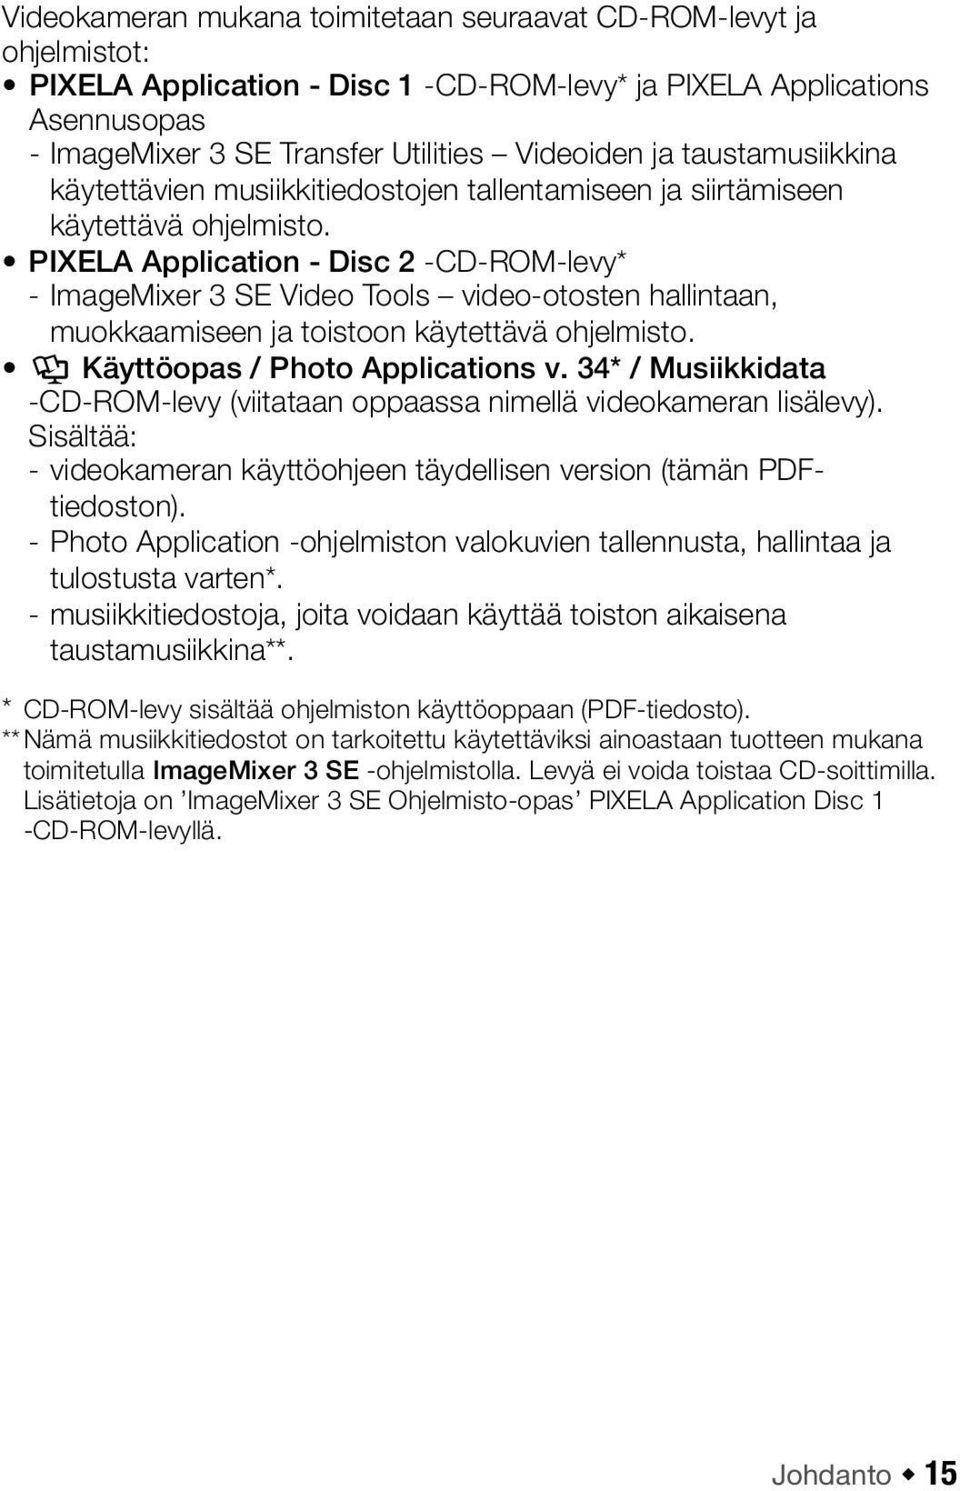 PIXELA Application - Disc 2 -CD-ROM-levy* - ImageMixer 3 SE Video Tools video-otosten hallintaan, muokkaamiseen ja toistoon käytettävä ohjelmisto. Y Käyttöopas / Photo Applications v.